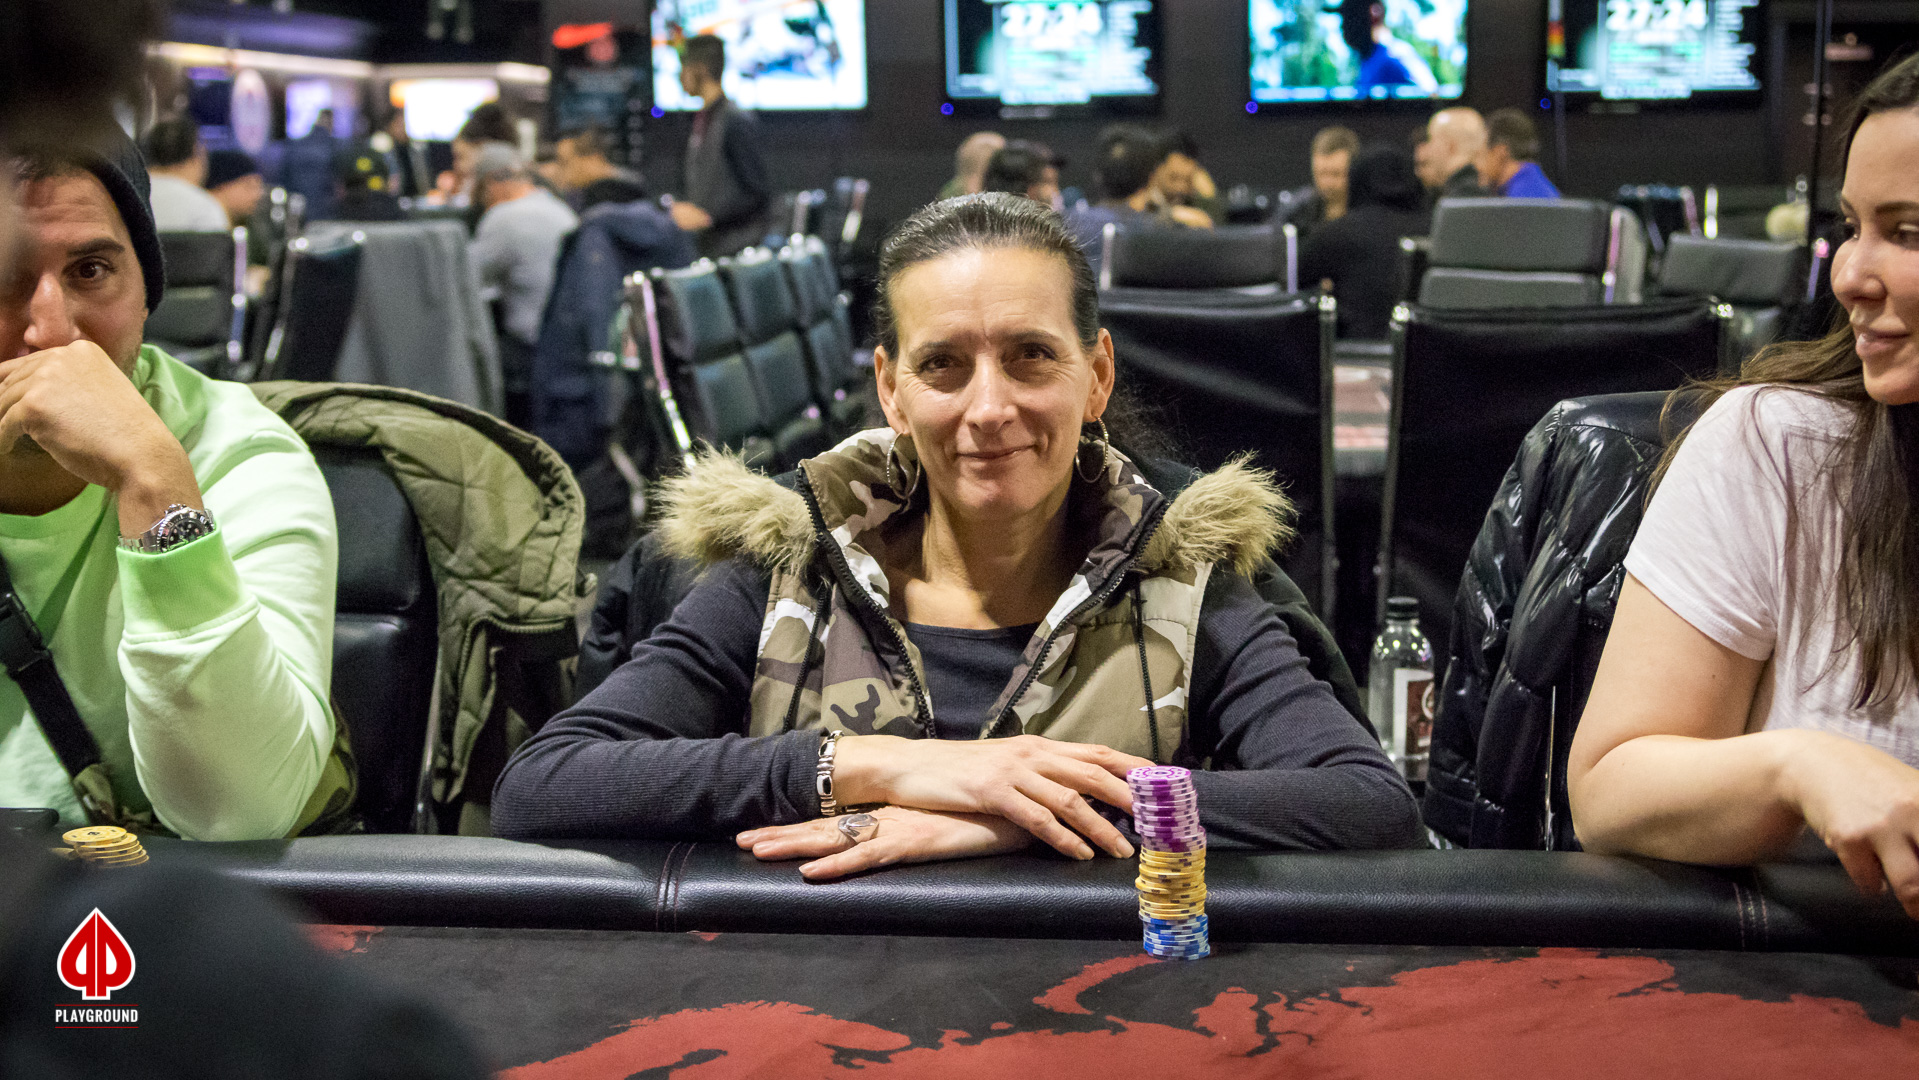 Rhainds exits in 9th ($120), Lemesle in 8th ($195)